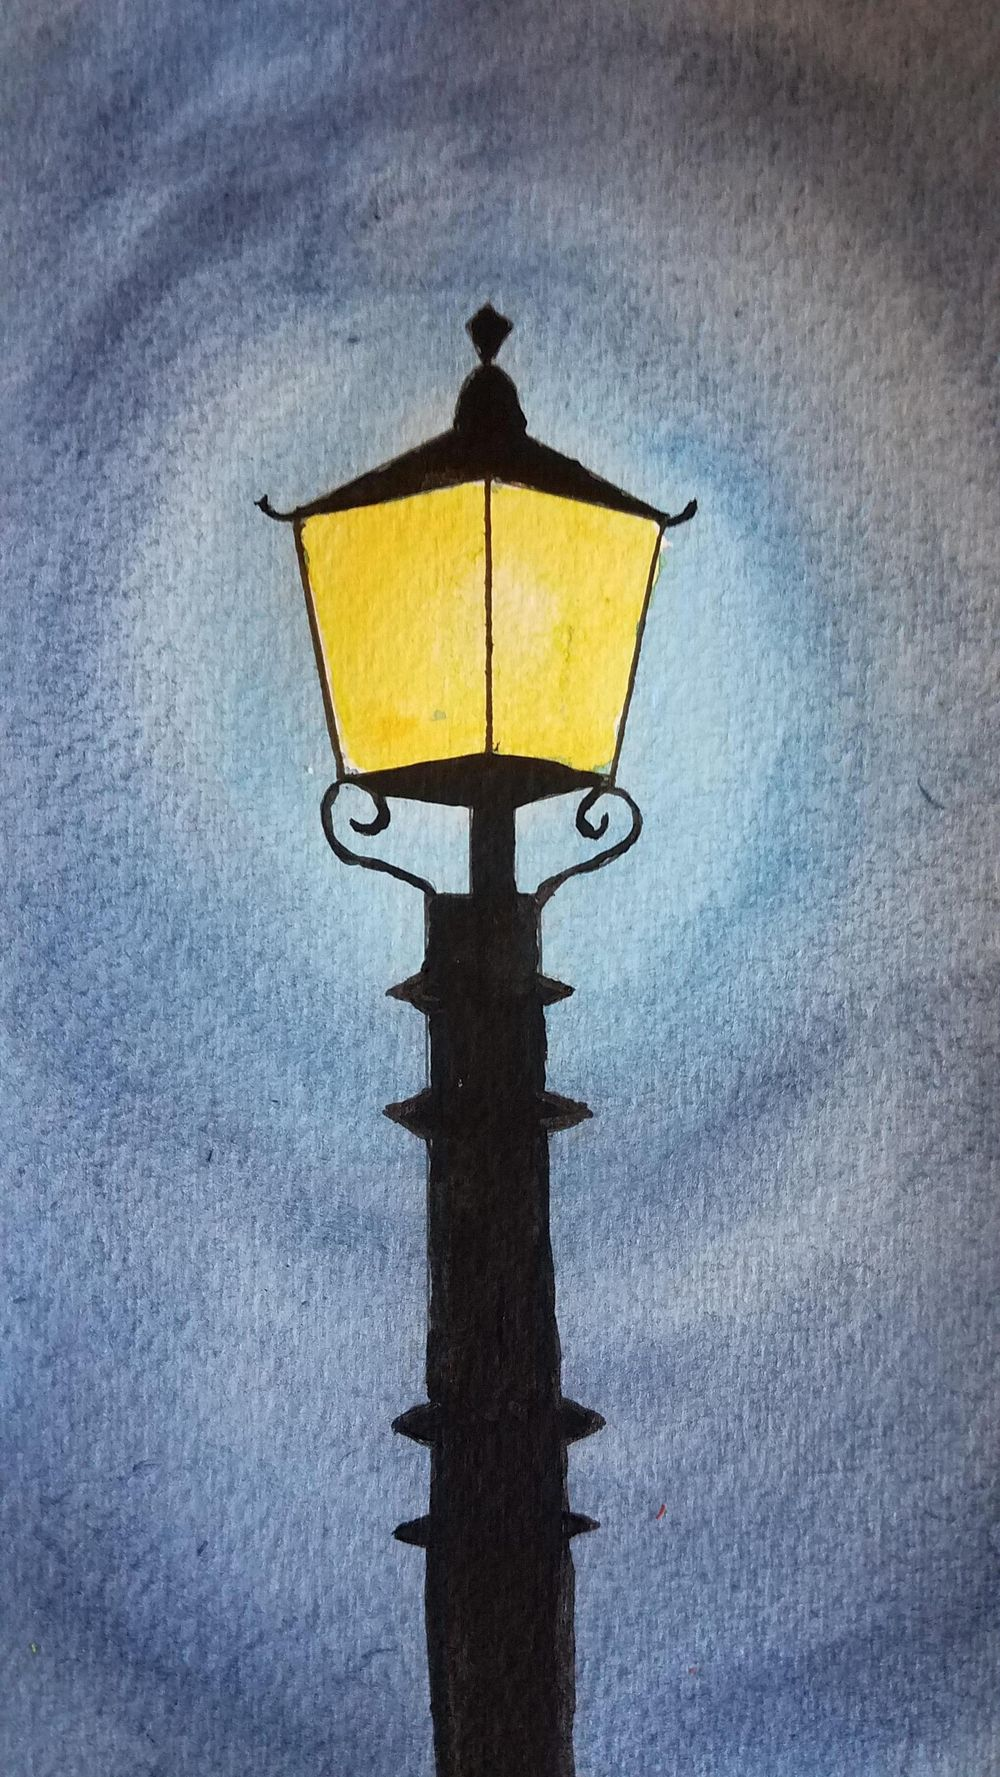 lamppost - image 1 - student project